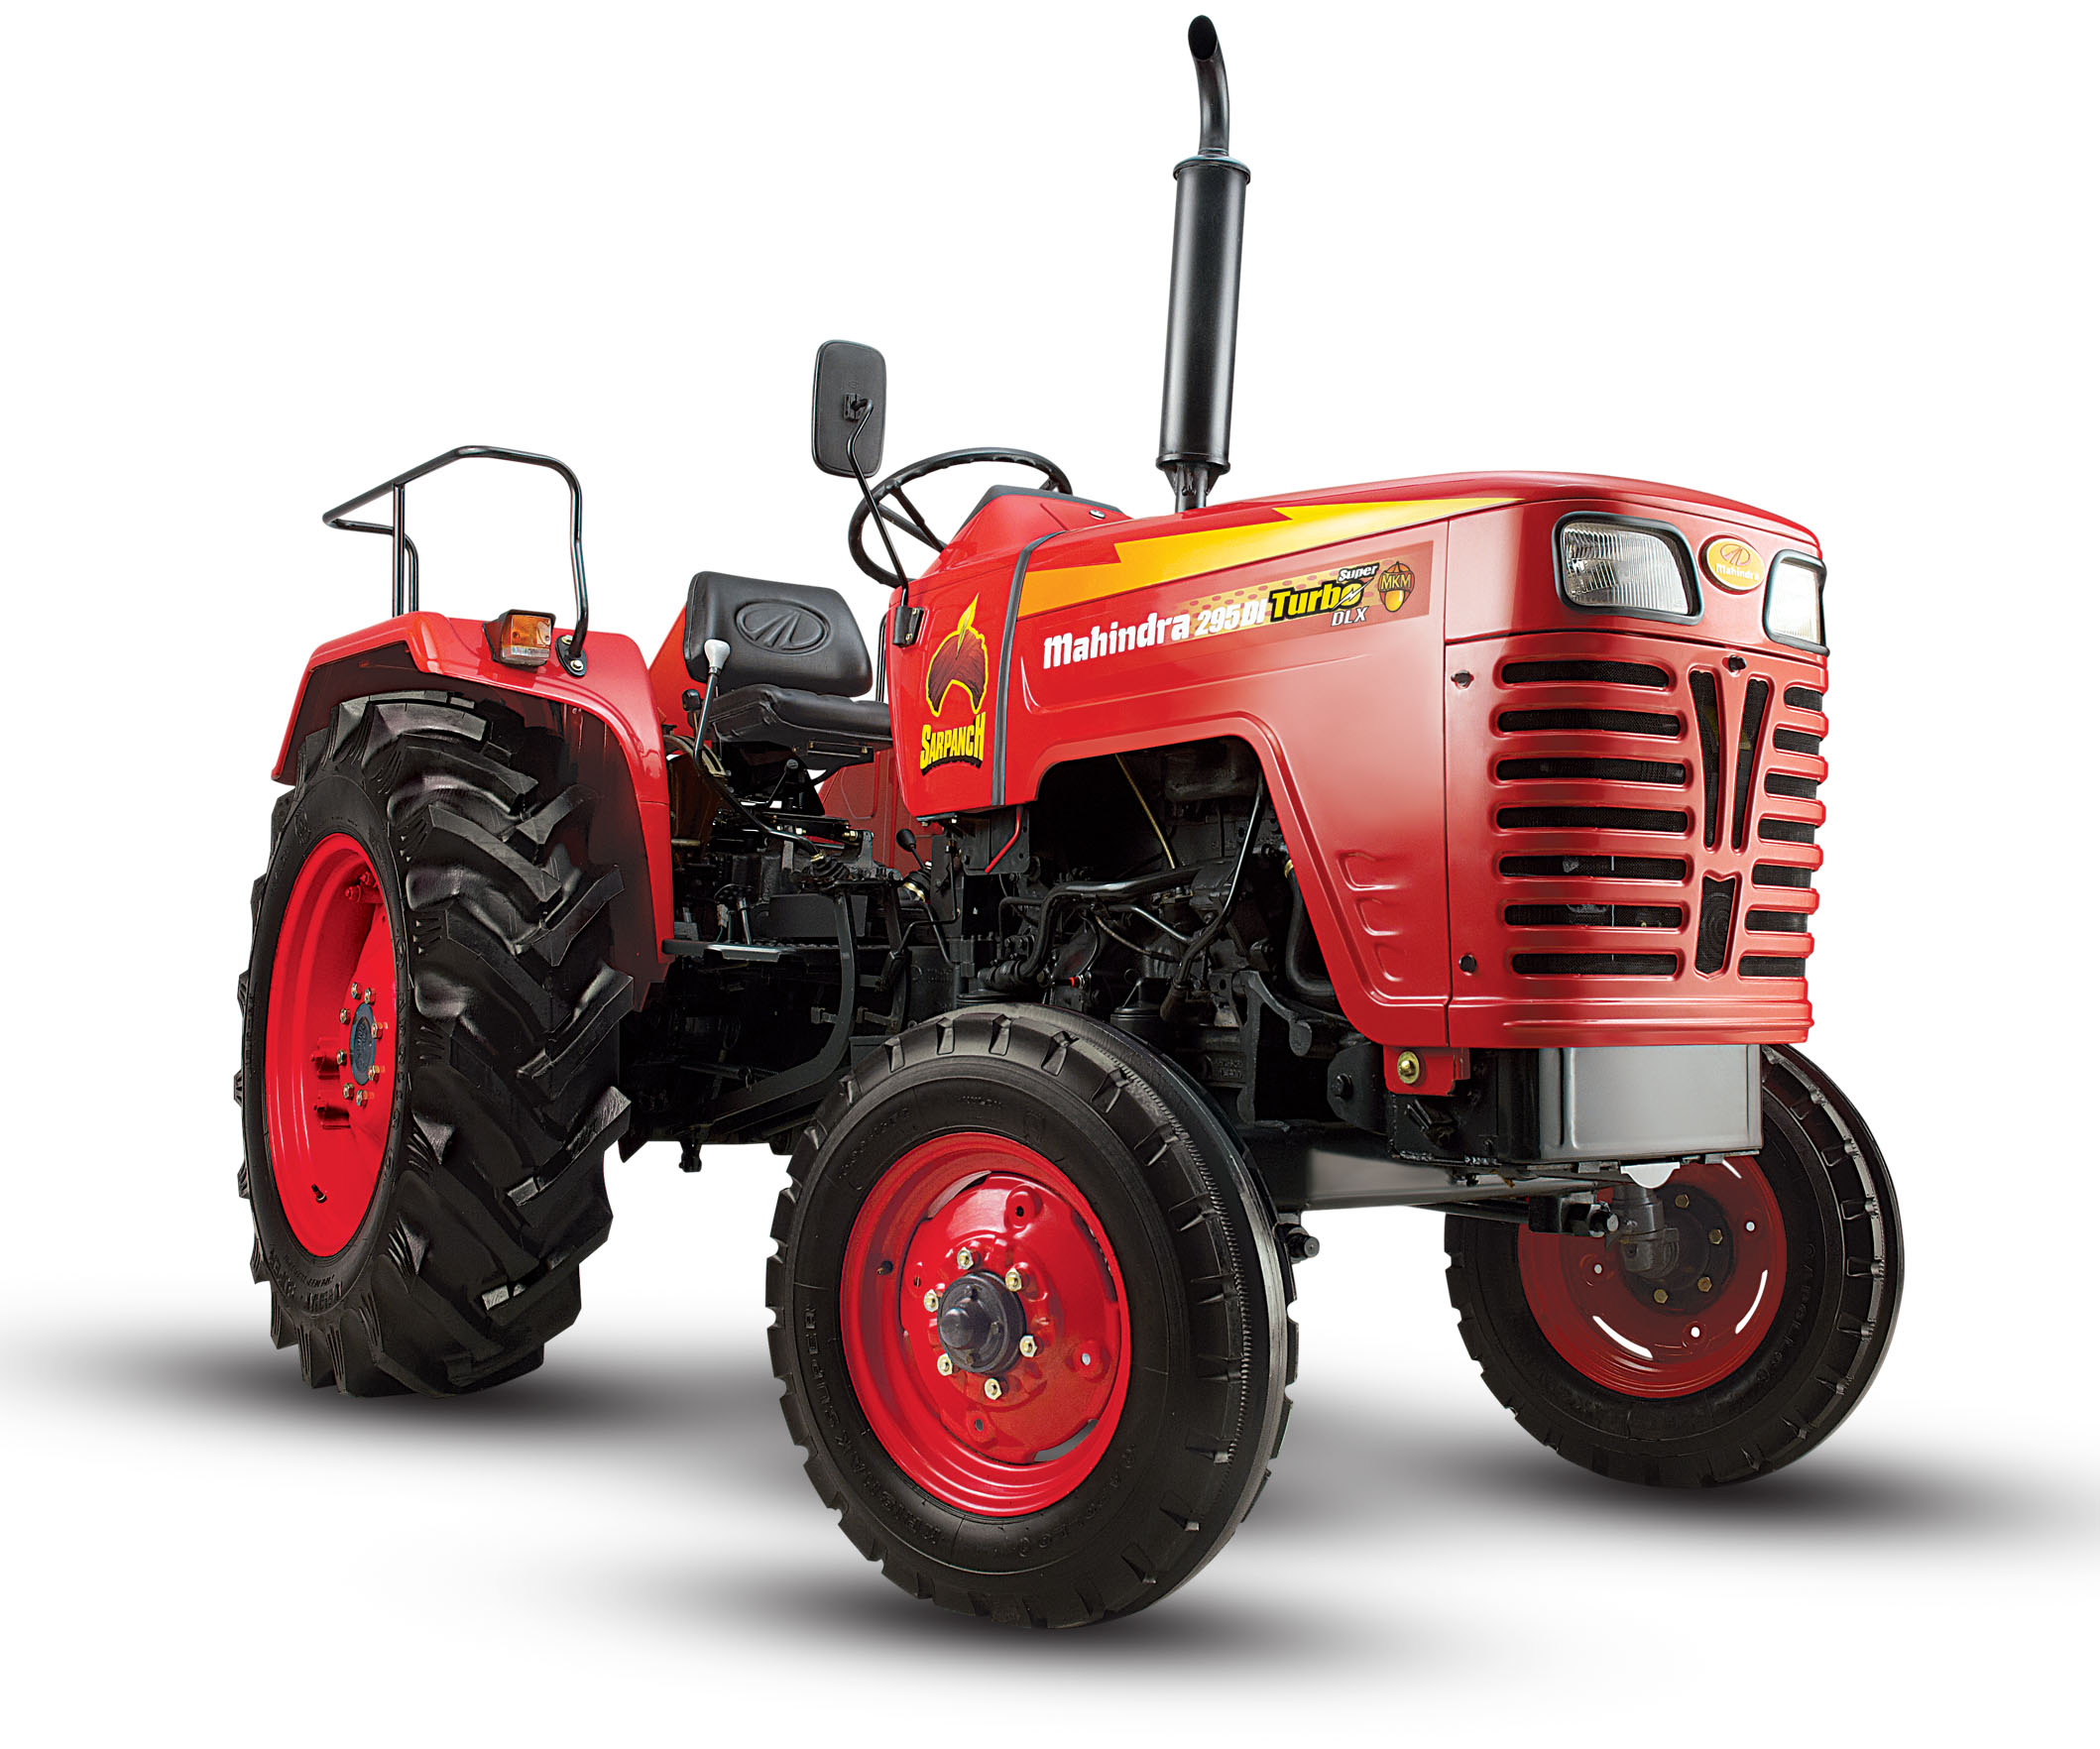 Kioti Tractor Electrical Diagrams Trusted Wiring Engine Diagram Mahindra 475 Work U2022 Seats